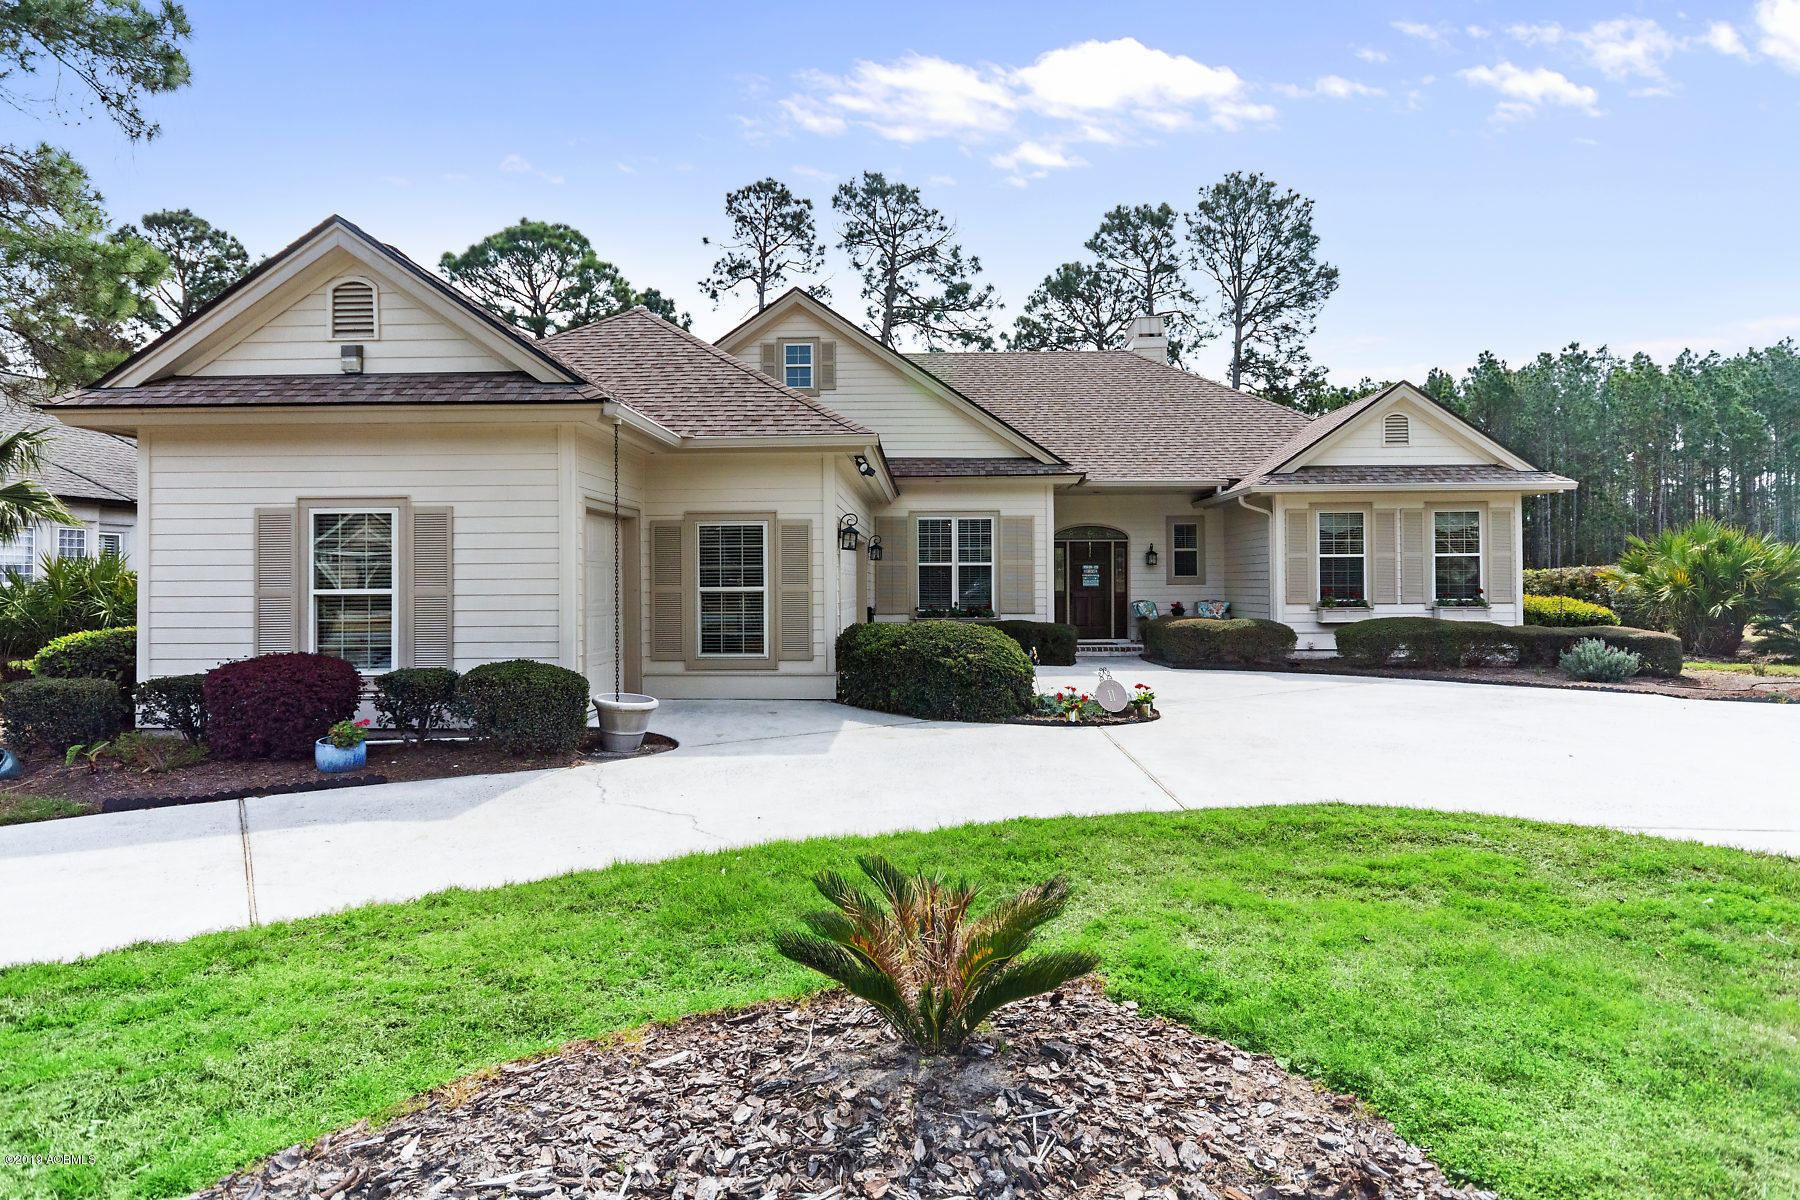 Photo of 11 Clyde Lane, Hilton Head Island, SC 29926